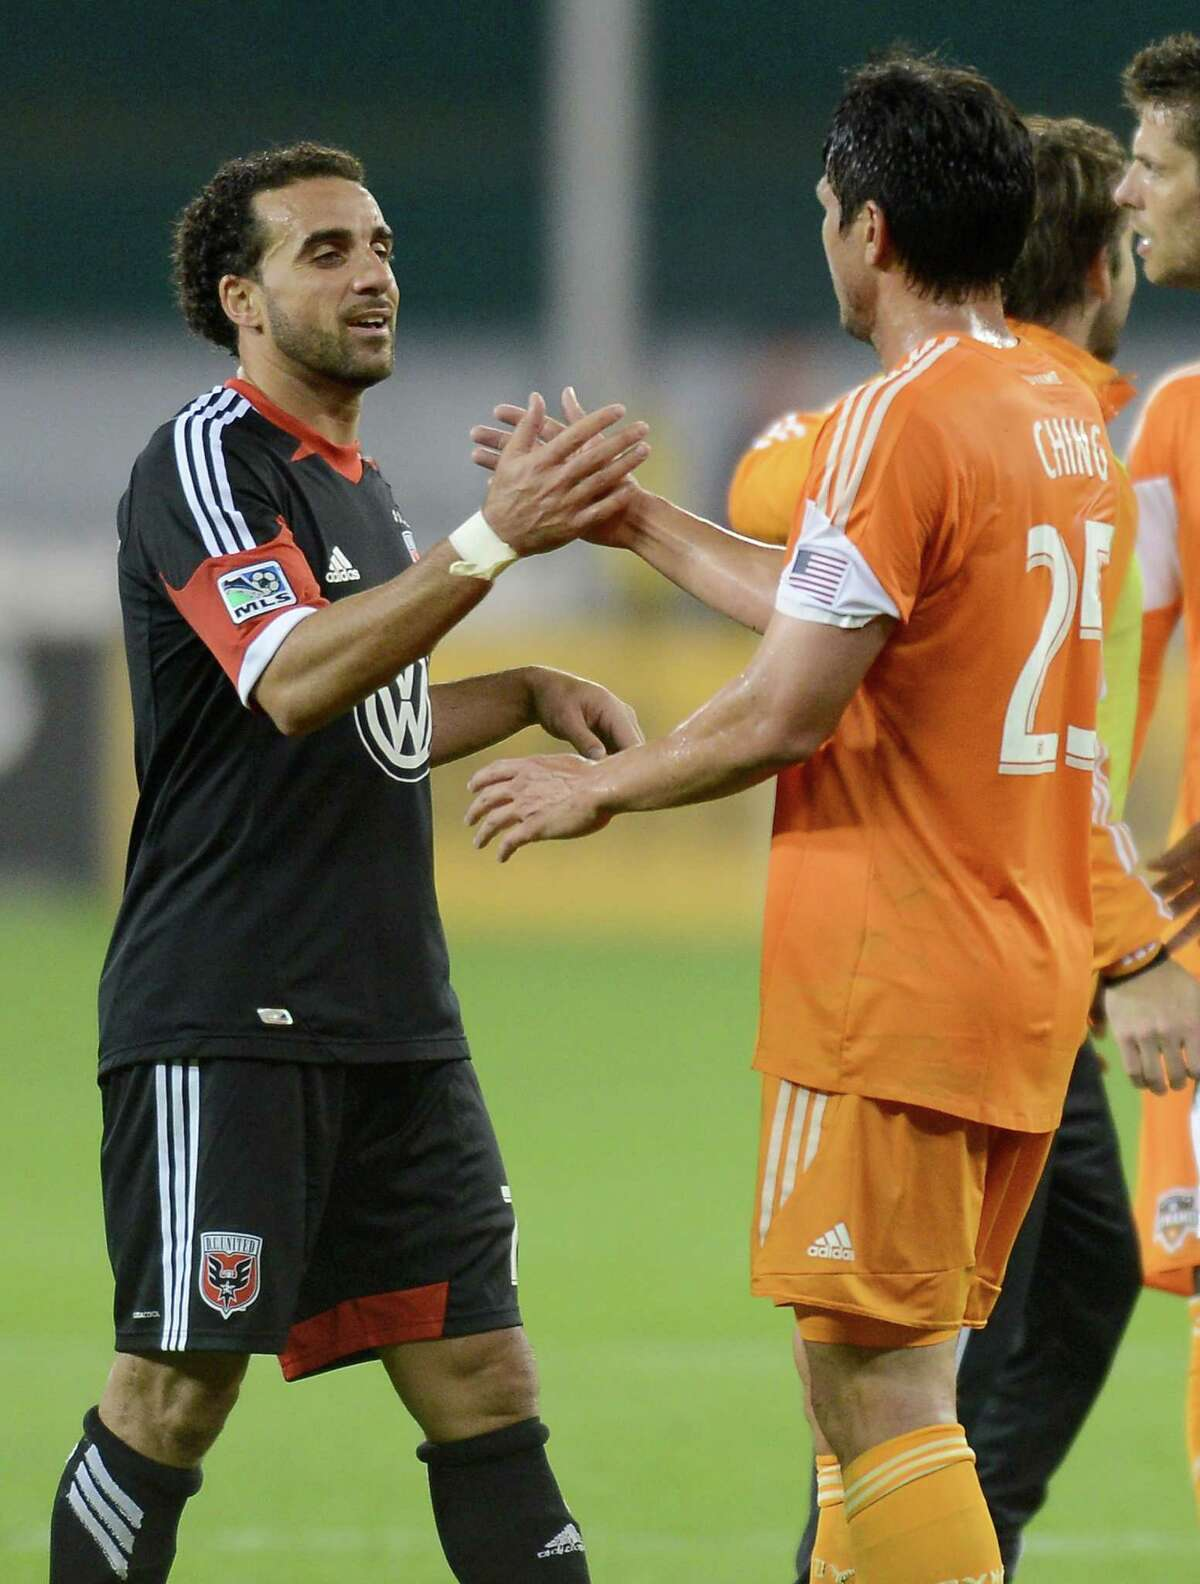 D.C. United midfielder Dwayne De Rosario (7) greets his former Houston Dynamo teammate Brian Ching (25) following the match at RFK Stadium in Washington, D.C., Wednesday, May 8, 2013. Dynamo blanked United, 4-0. (Chuck Myers/MCT)